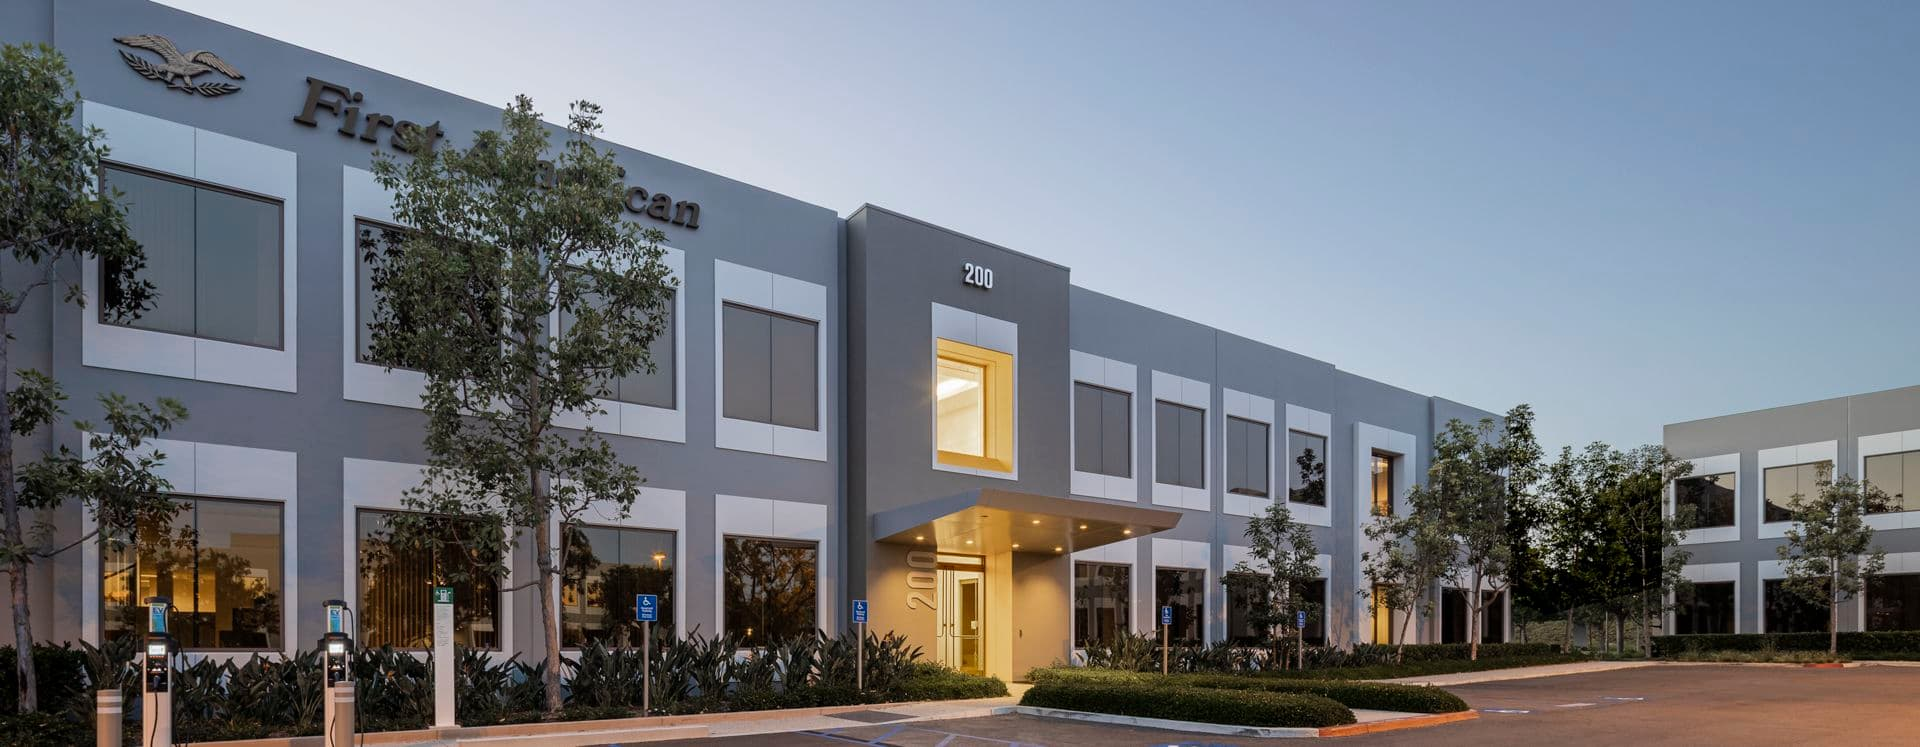 Exterior view of 200 Commerce at Market Place Center in Irvine, CA.